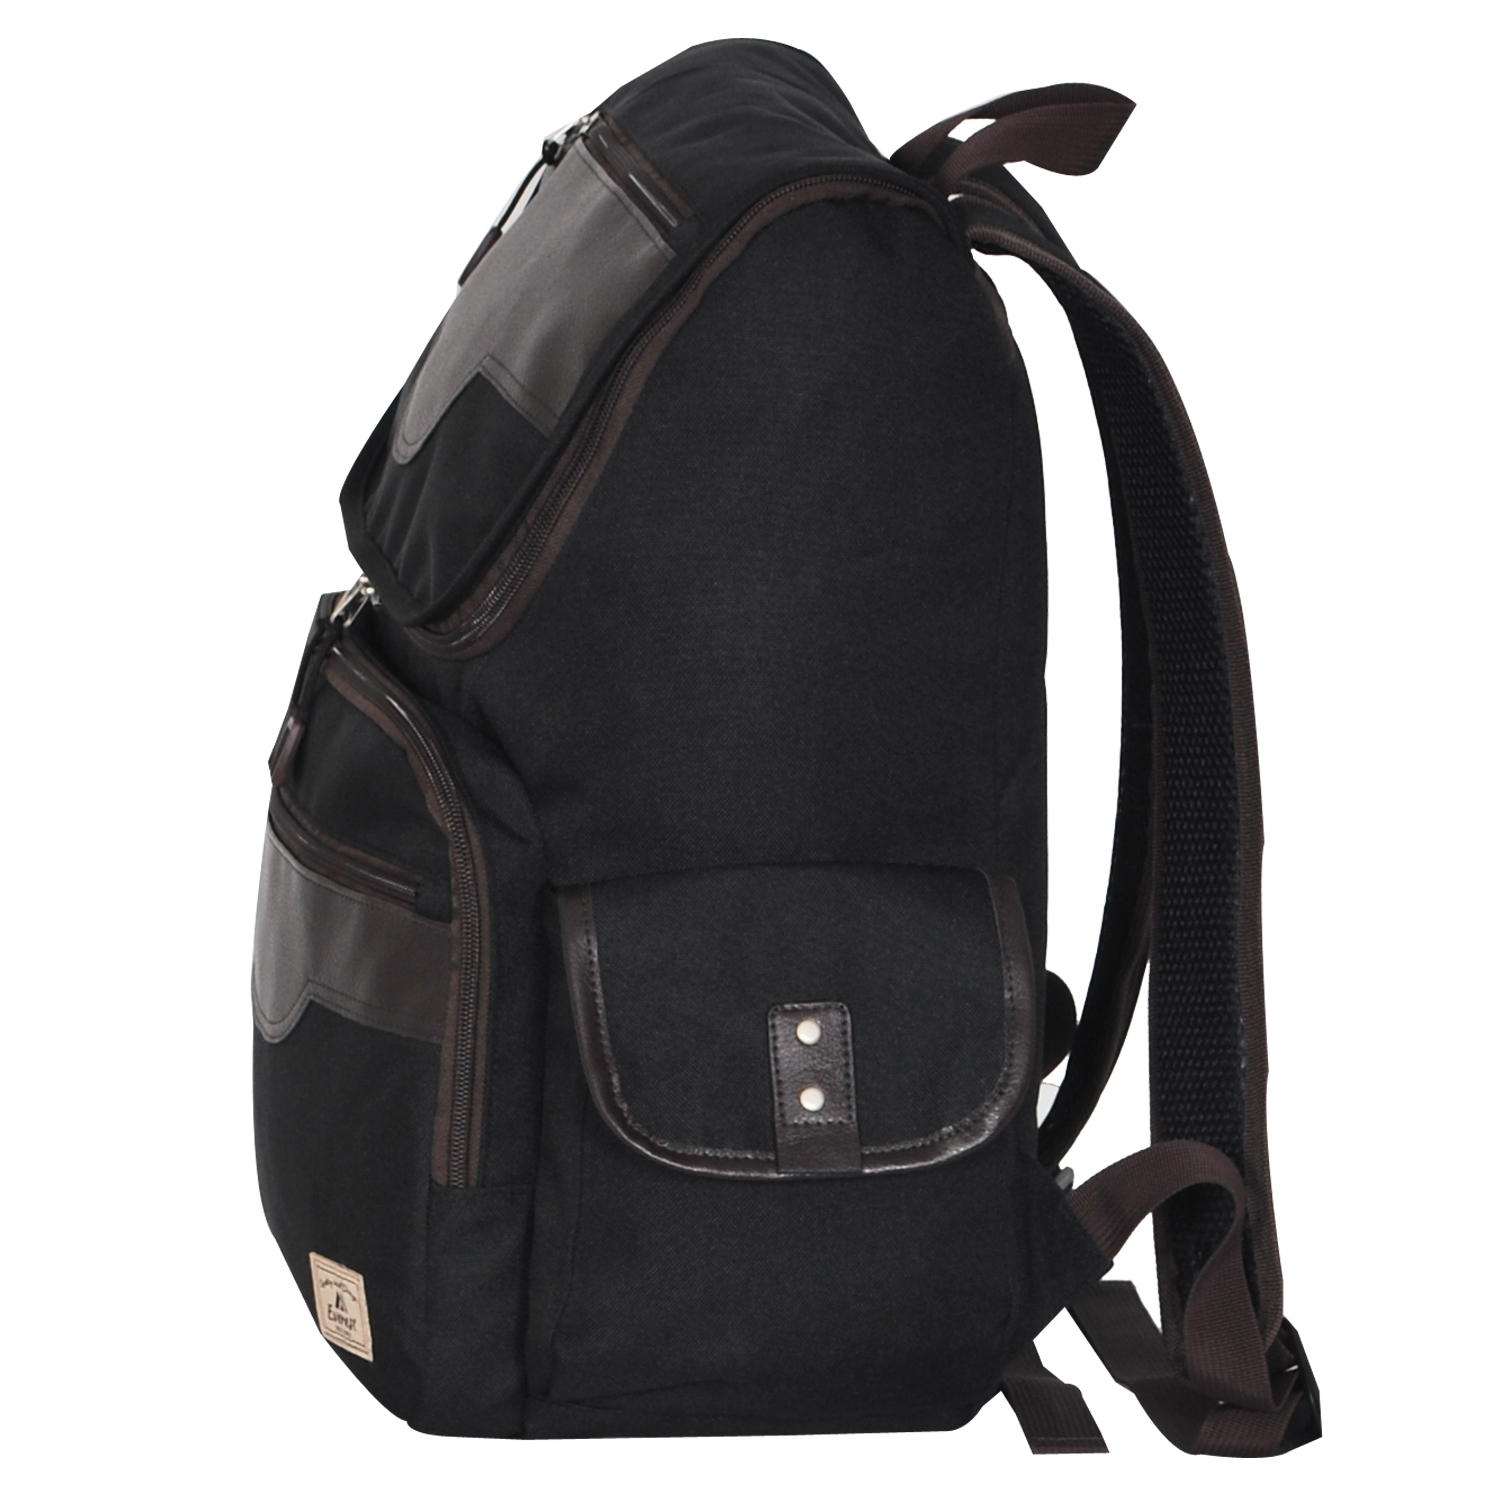 Everest Wrangler Backpack